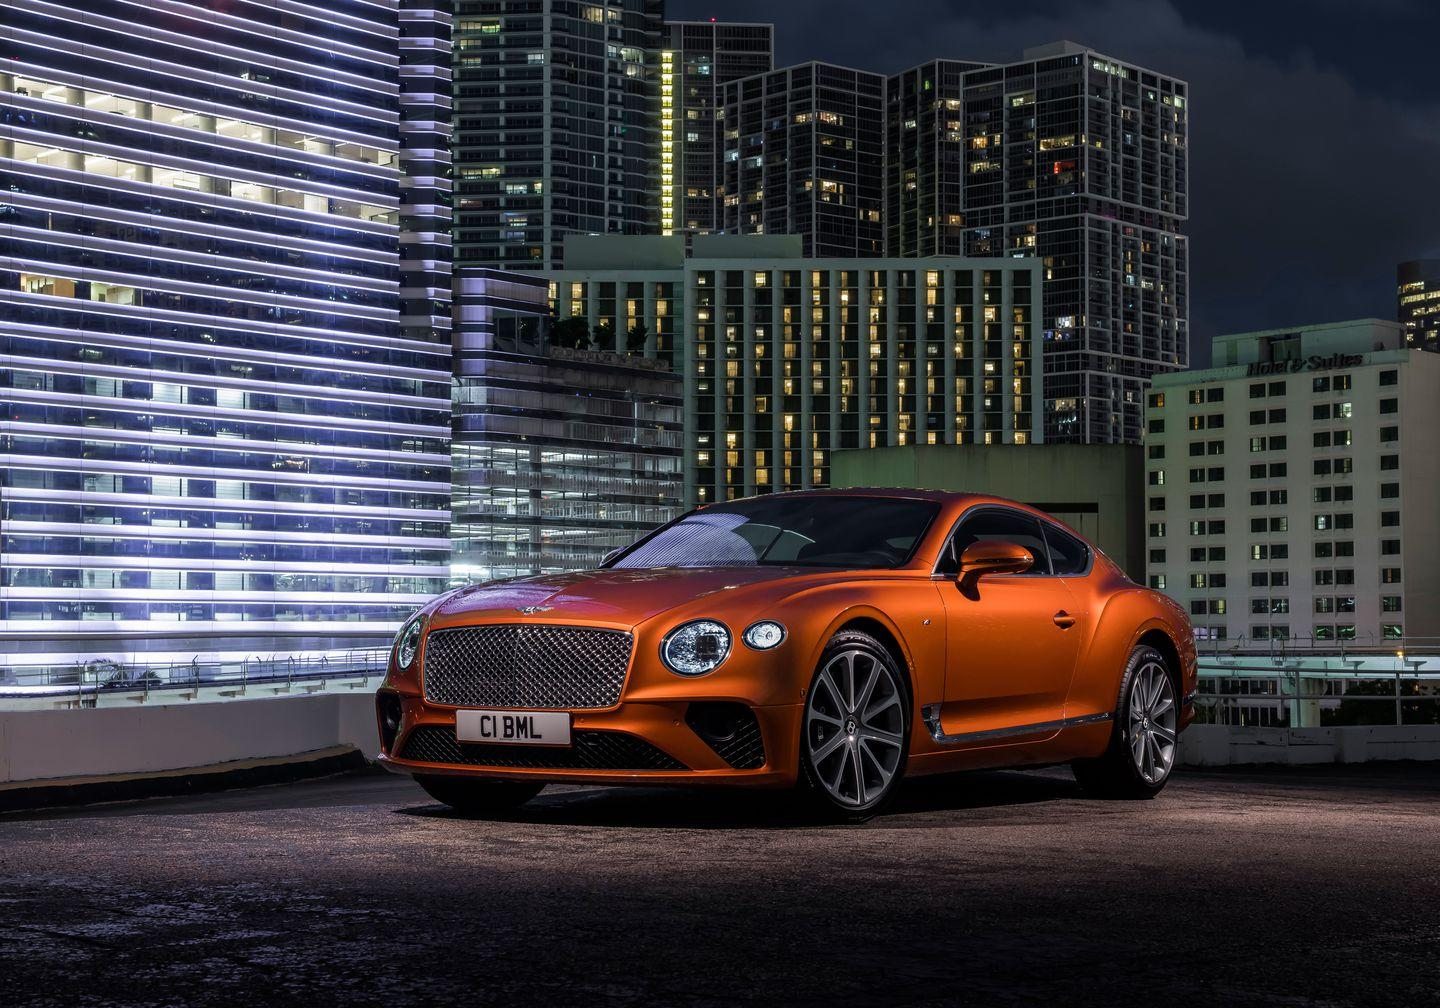 """<p><a href=""""https://www.caranddriver.com/reviews/a26470698/2019-bentley-continental-gt-by-the-numbers/"""" rel=""""nofollow noopener"""" target=""""_blank"""" data-ylk=""""slk:A Continental GT we tested with the W-12"""" class=""""link rapid-noclick-resp"""">A Continental GT we tested with the W-12</a> outran Bentley's own estimate with a scorching 3.3-second run to 60 mph, so we'd expect the V-8 model to be just a bit less brisk than that.</p>"""